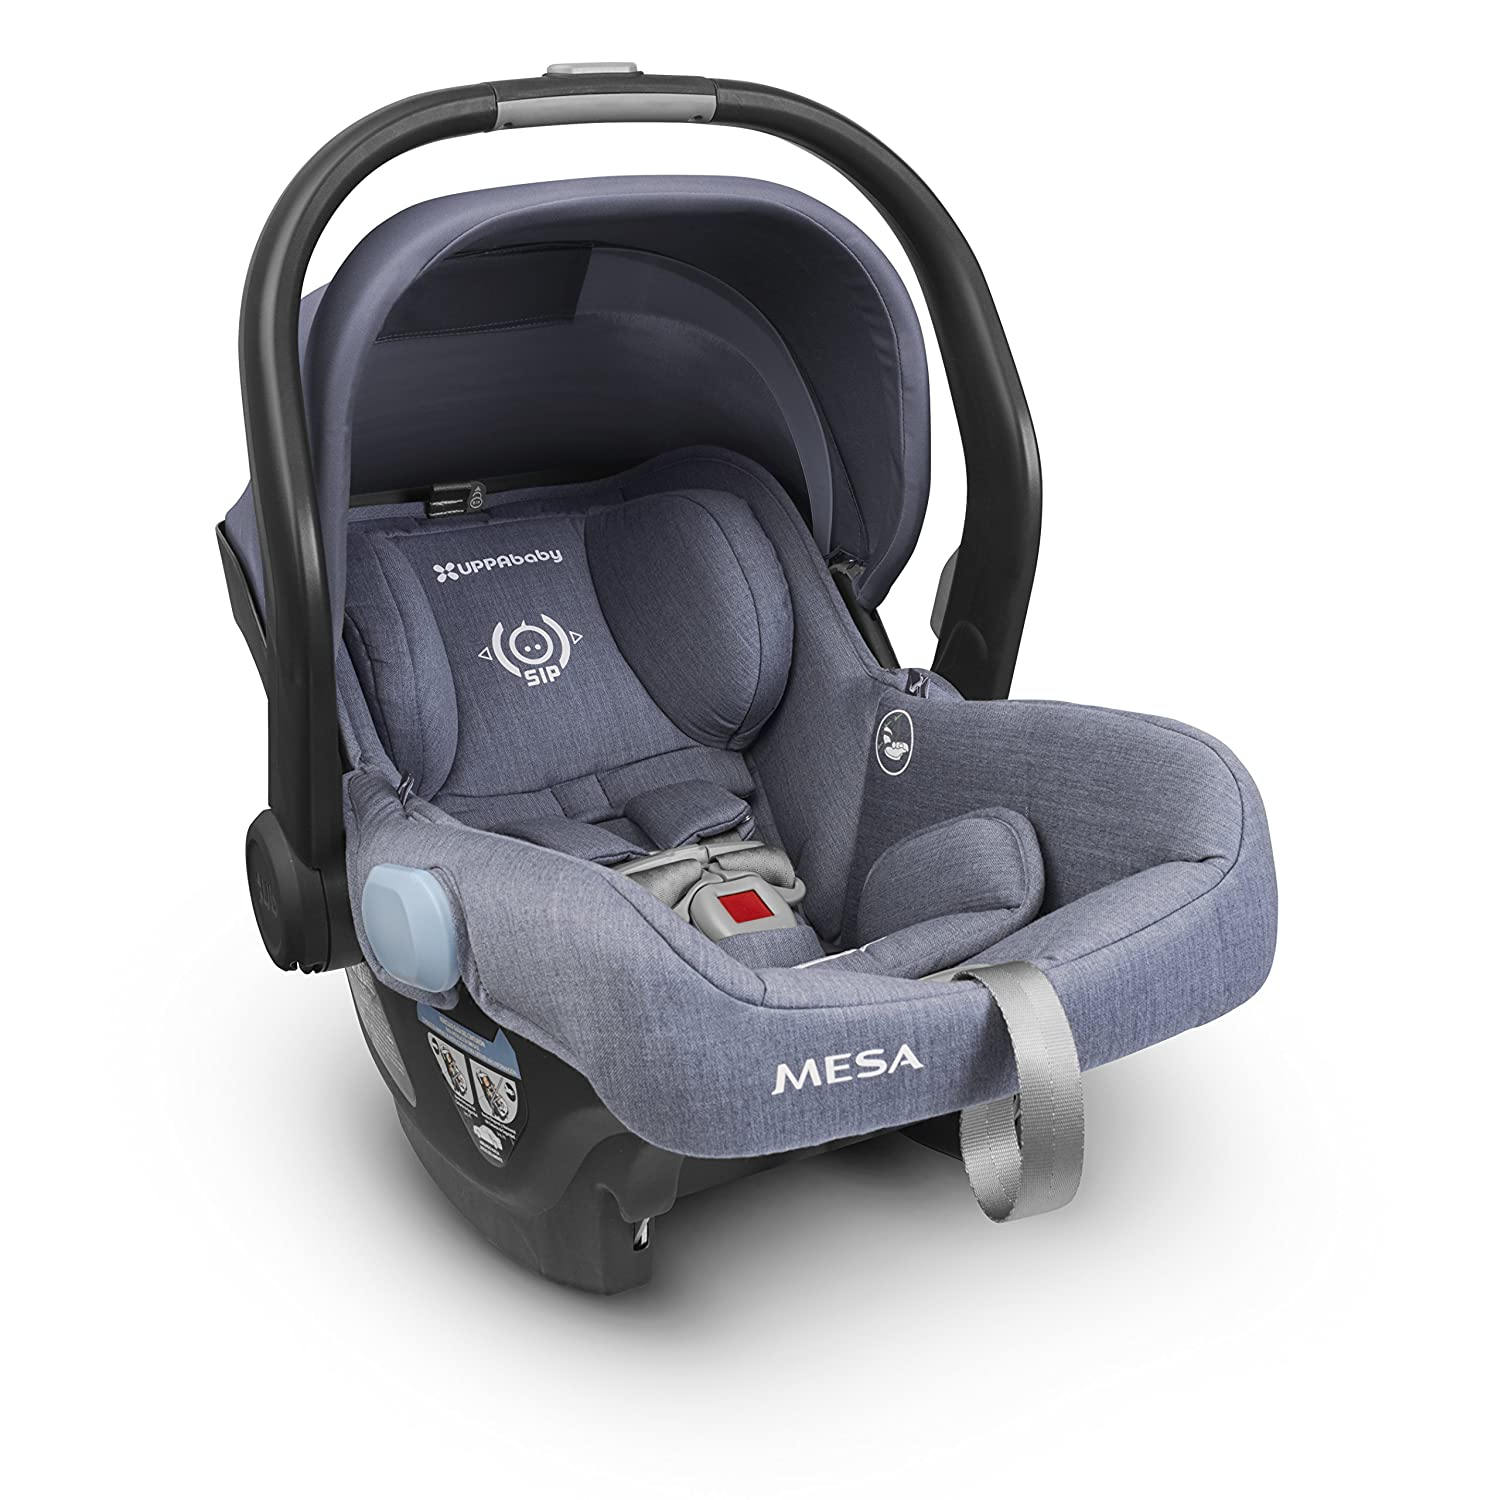 Amazon 2018 UPPAbaby MESA Infant Car Seat